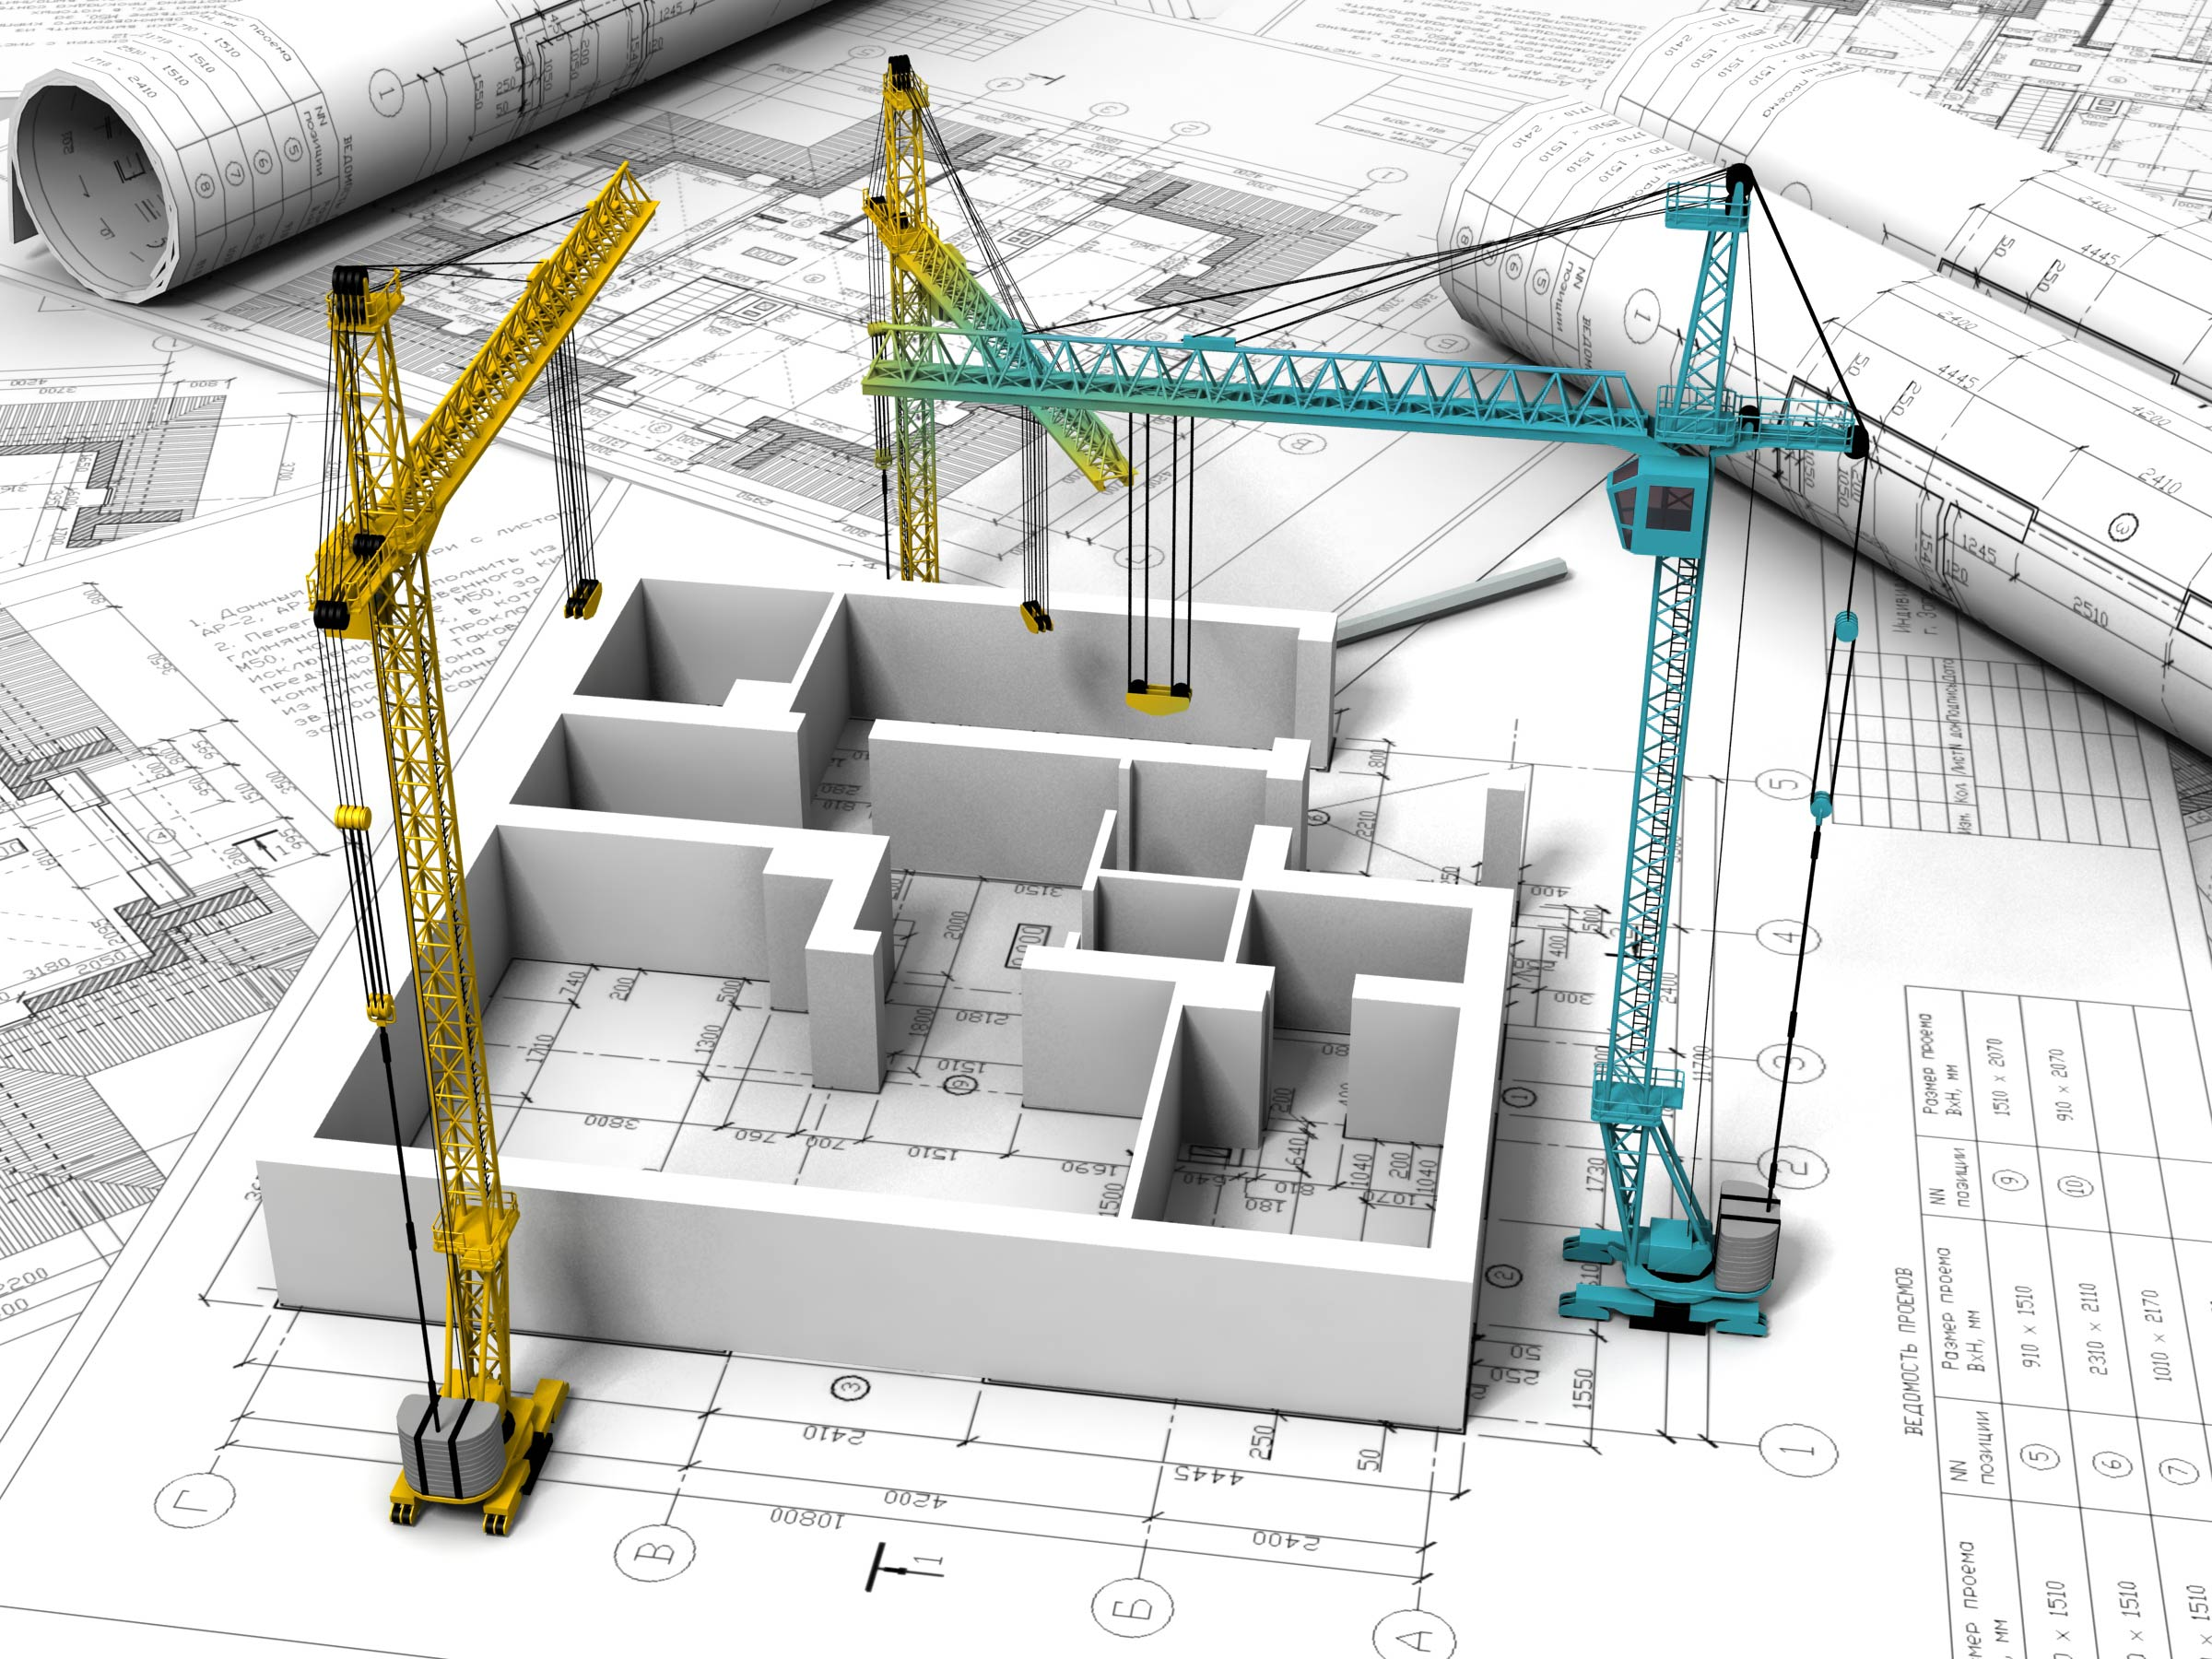 5 Rumors about Turkey Property Ownership And Real Estate Development